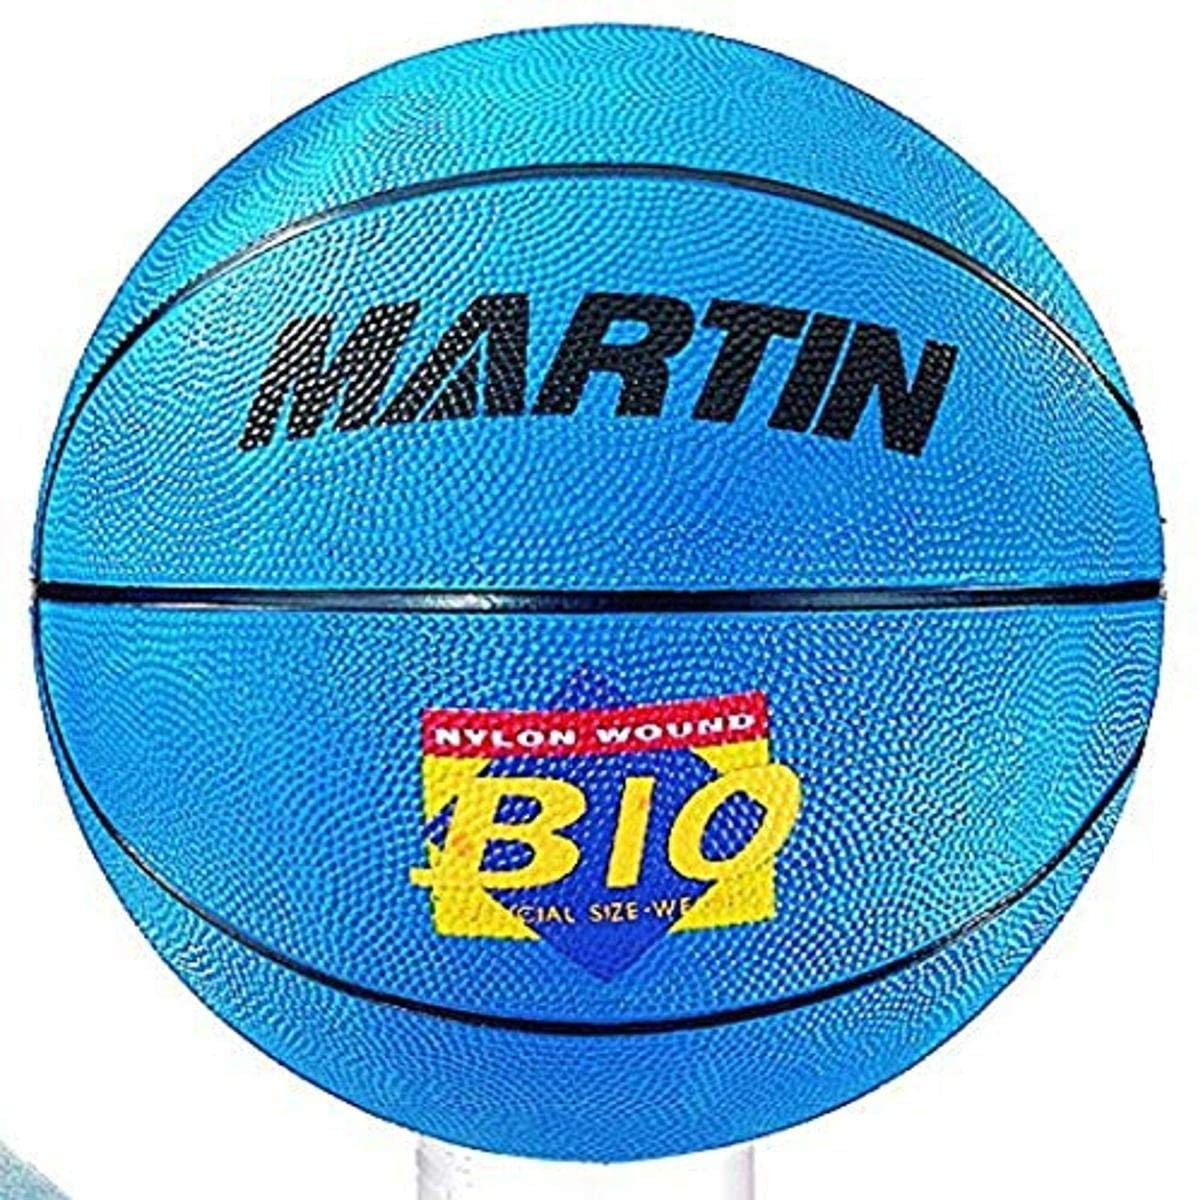 Martin Sports Official Size Rubber Basketball, Blue